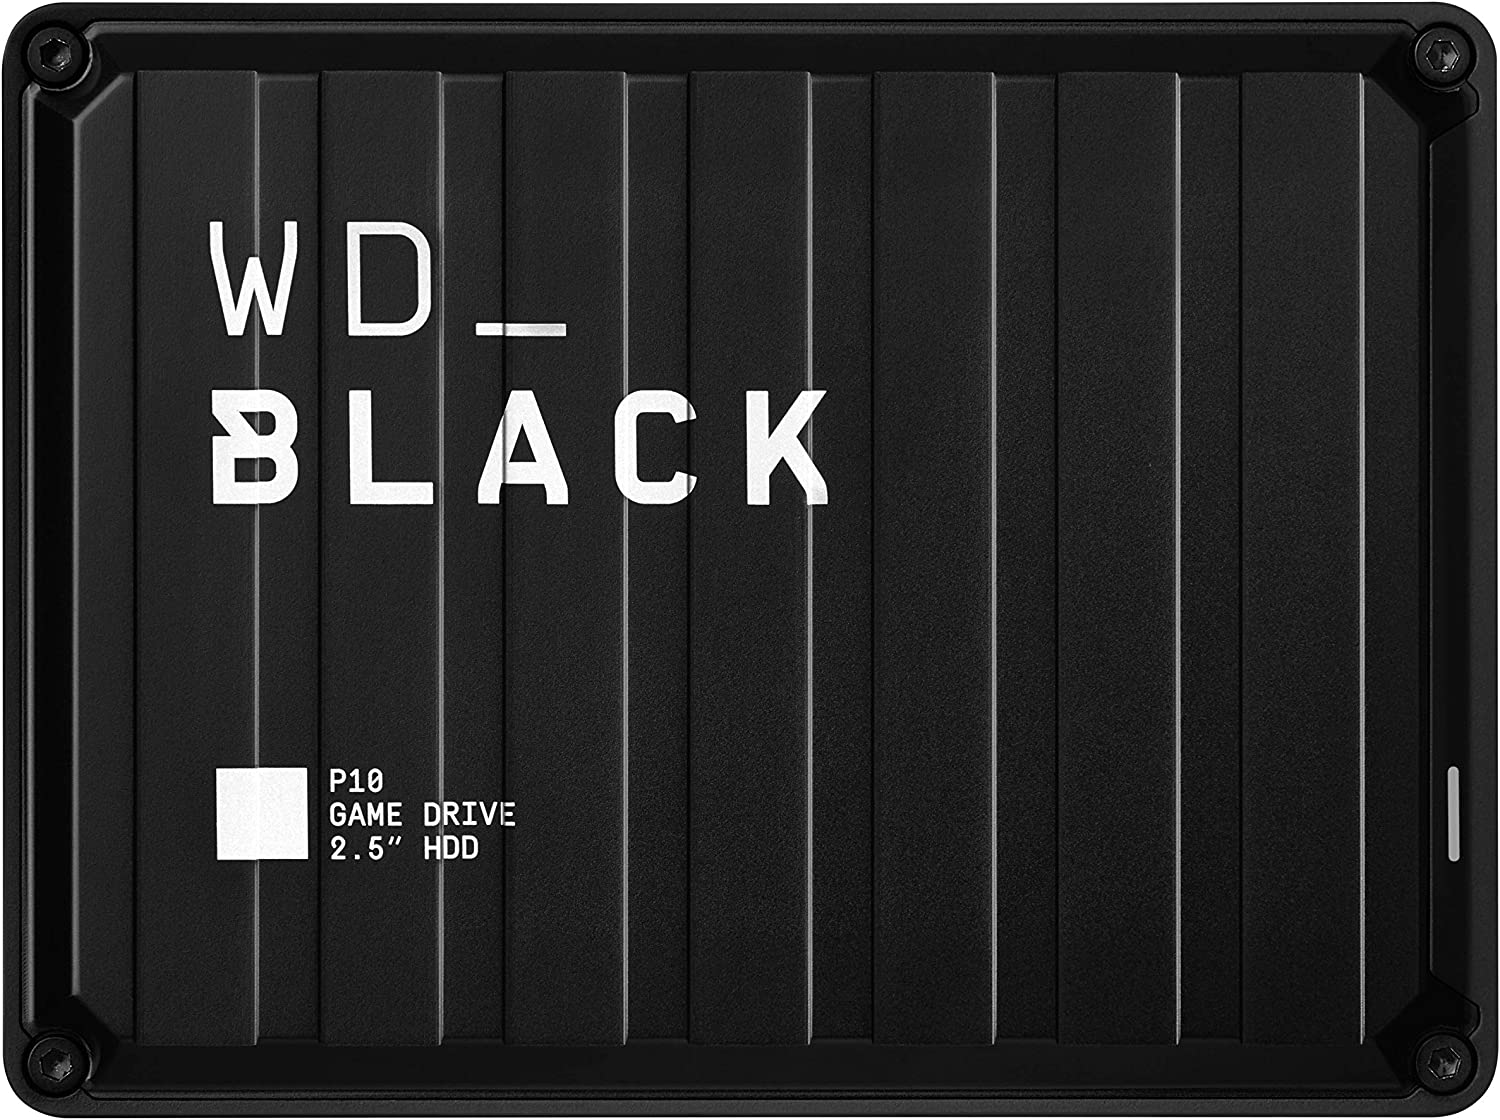 WD Black 4TB P10 Game Drive Portable External Hard Drive Compatible with PS4 Xbox One PC and Mac WDBA3A0040BBKWESN